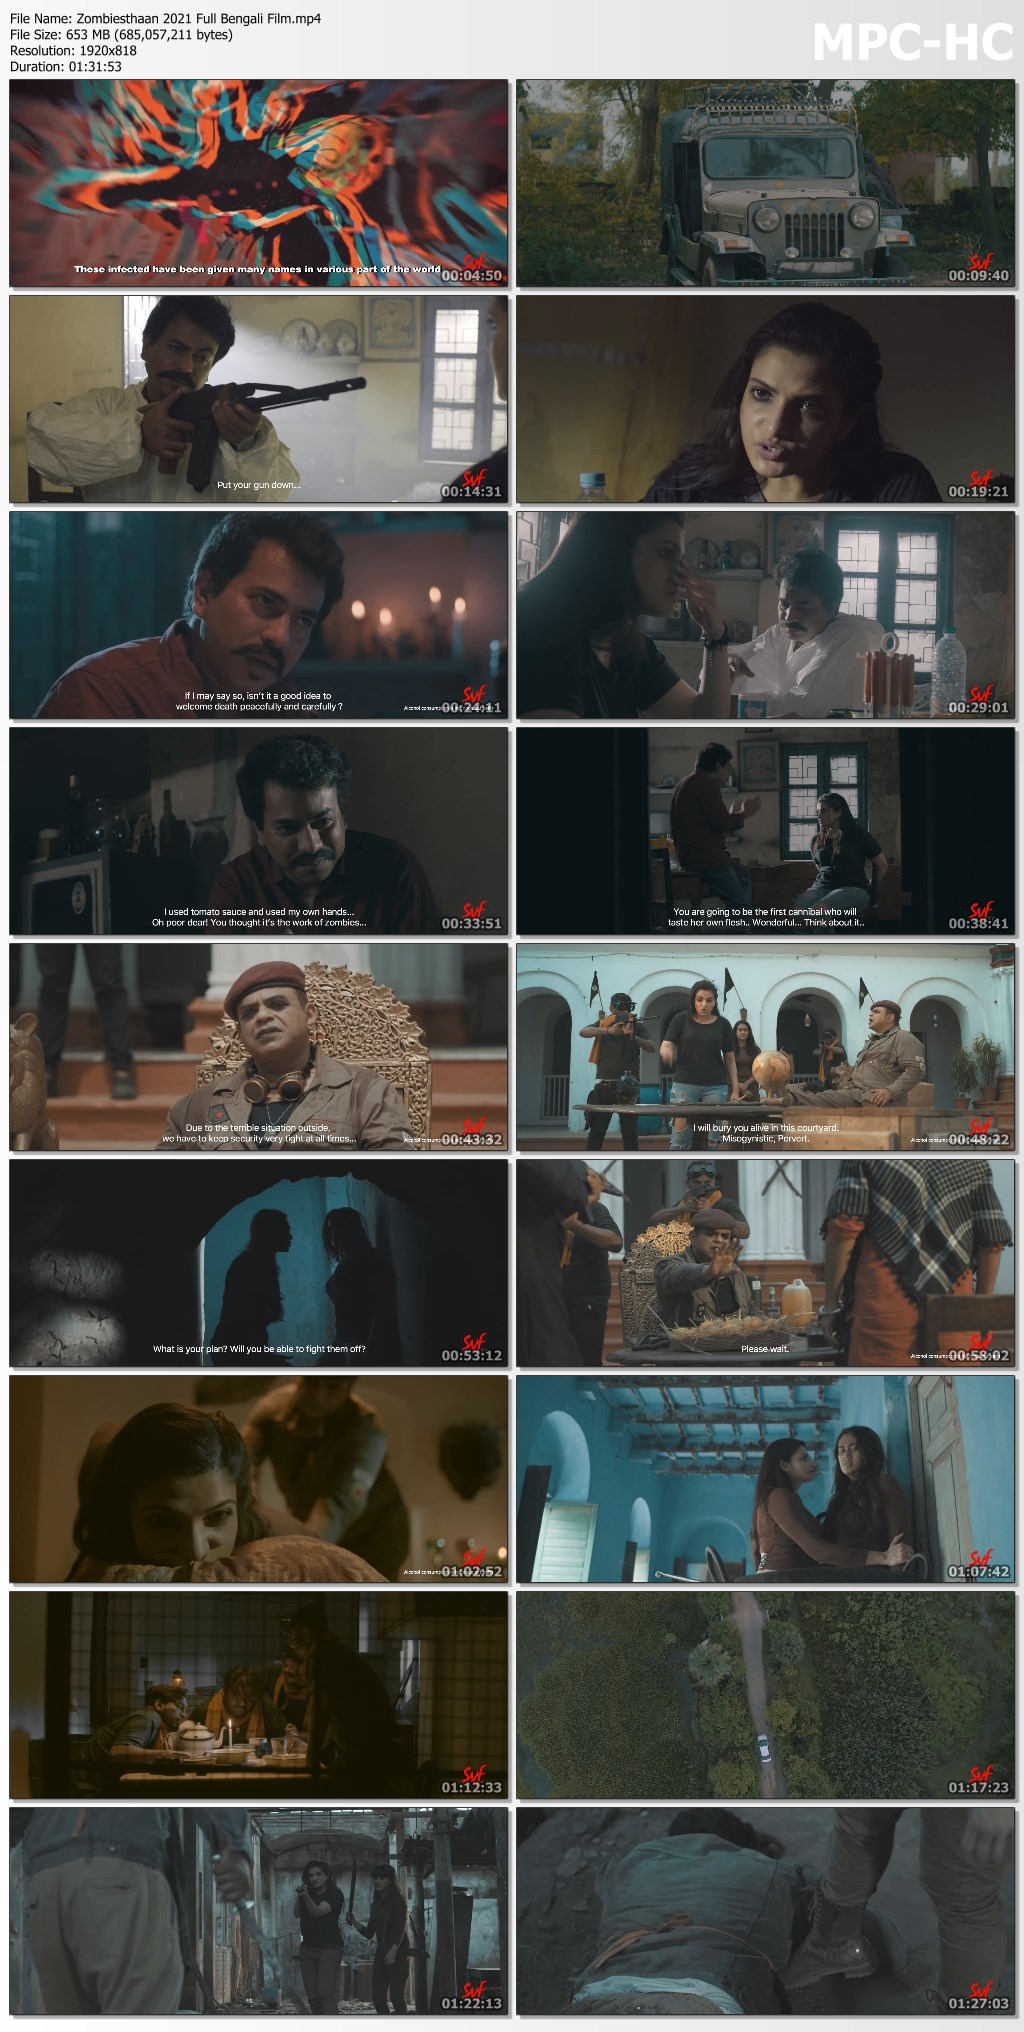 Zombiesthaan 2021 Full Bengali Film.mp4 thumbs